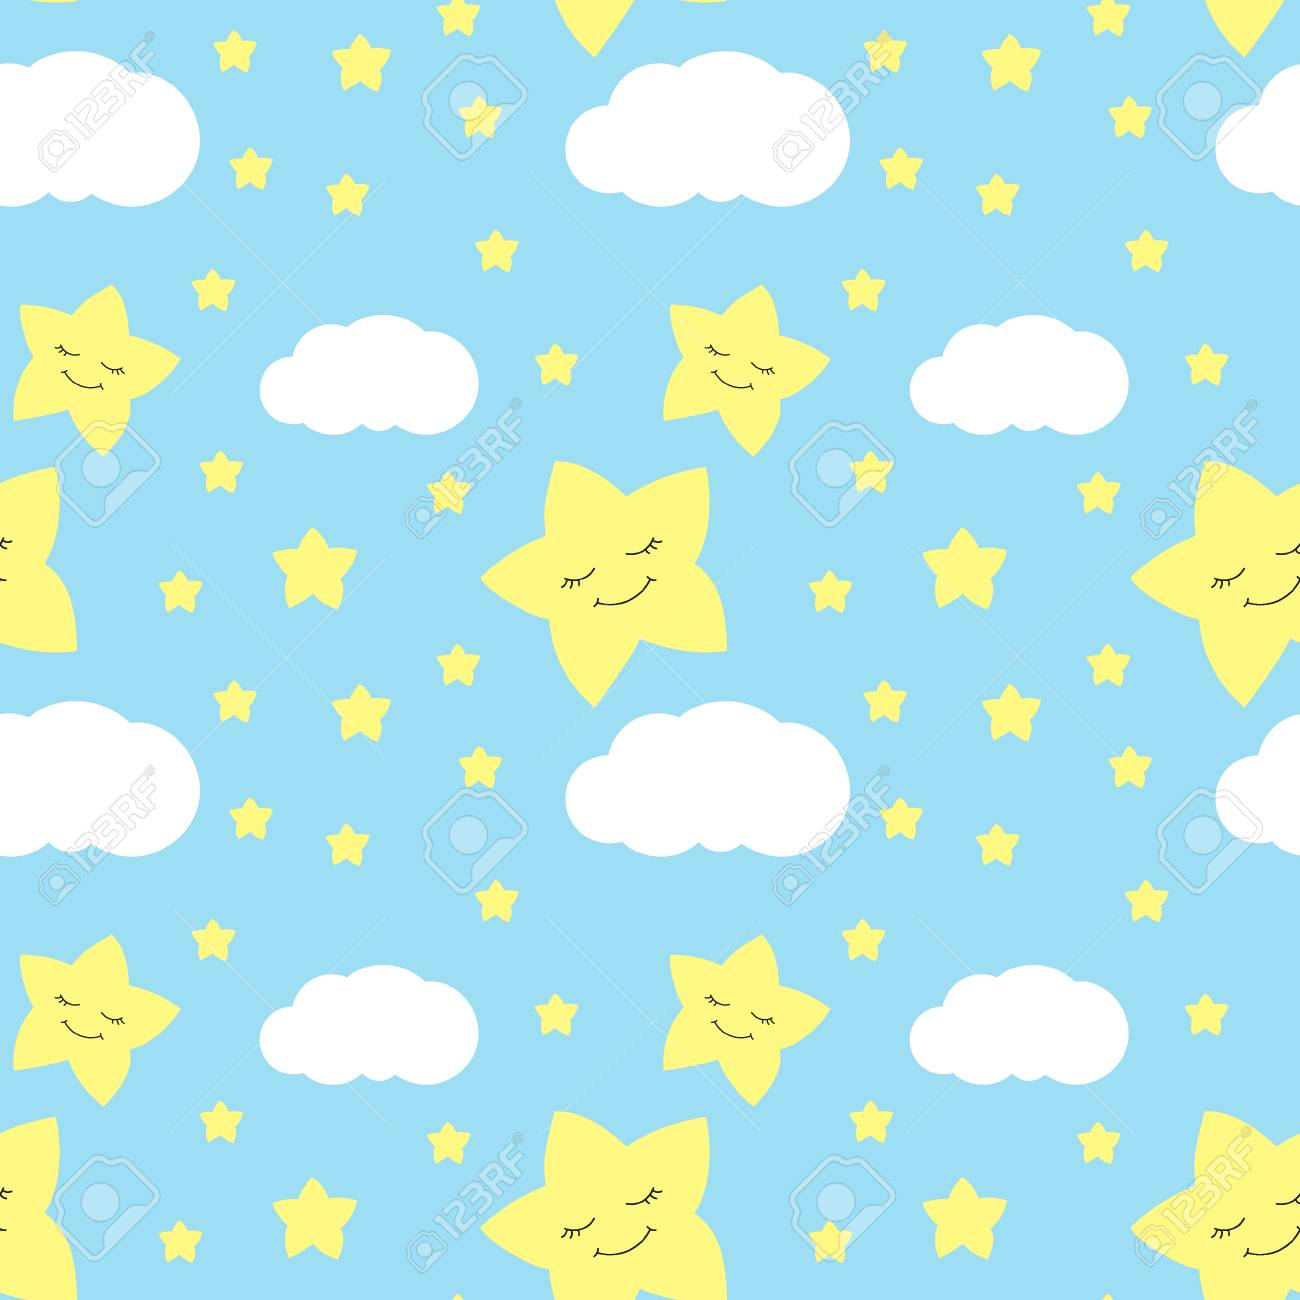 Cute Baby Star Pattern Vector Seamless Boy Print With Eyelash Royalty Free Cliparts Vectors And Stock Illustration Image 78598828